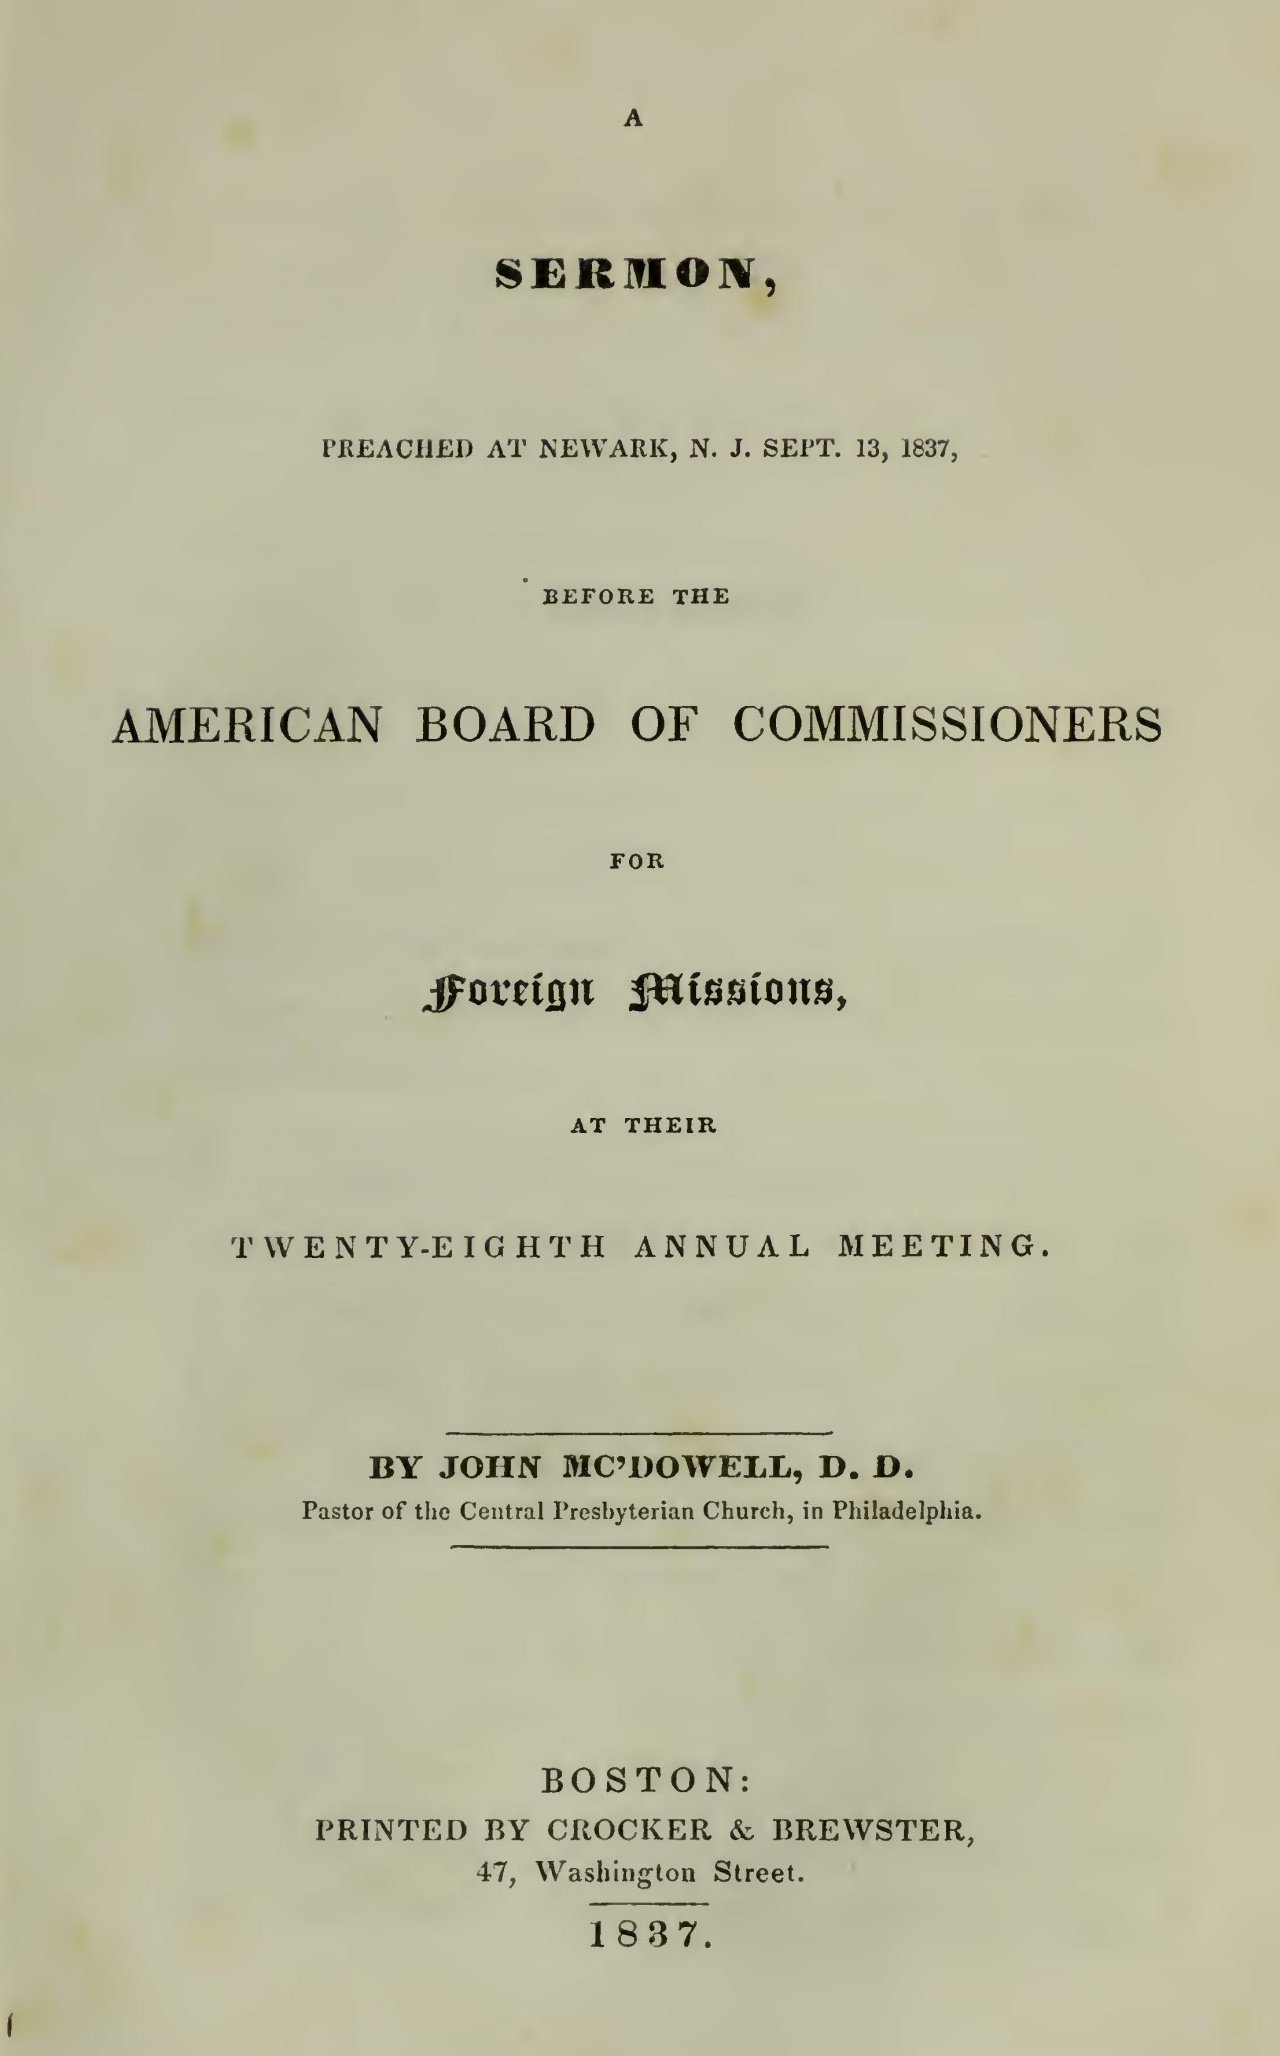 McDowell, John, 1837 Sermon Before the American Board of Commissioners for Foreign Missions Title Page.jpg